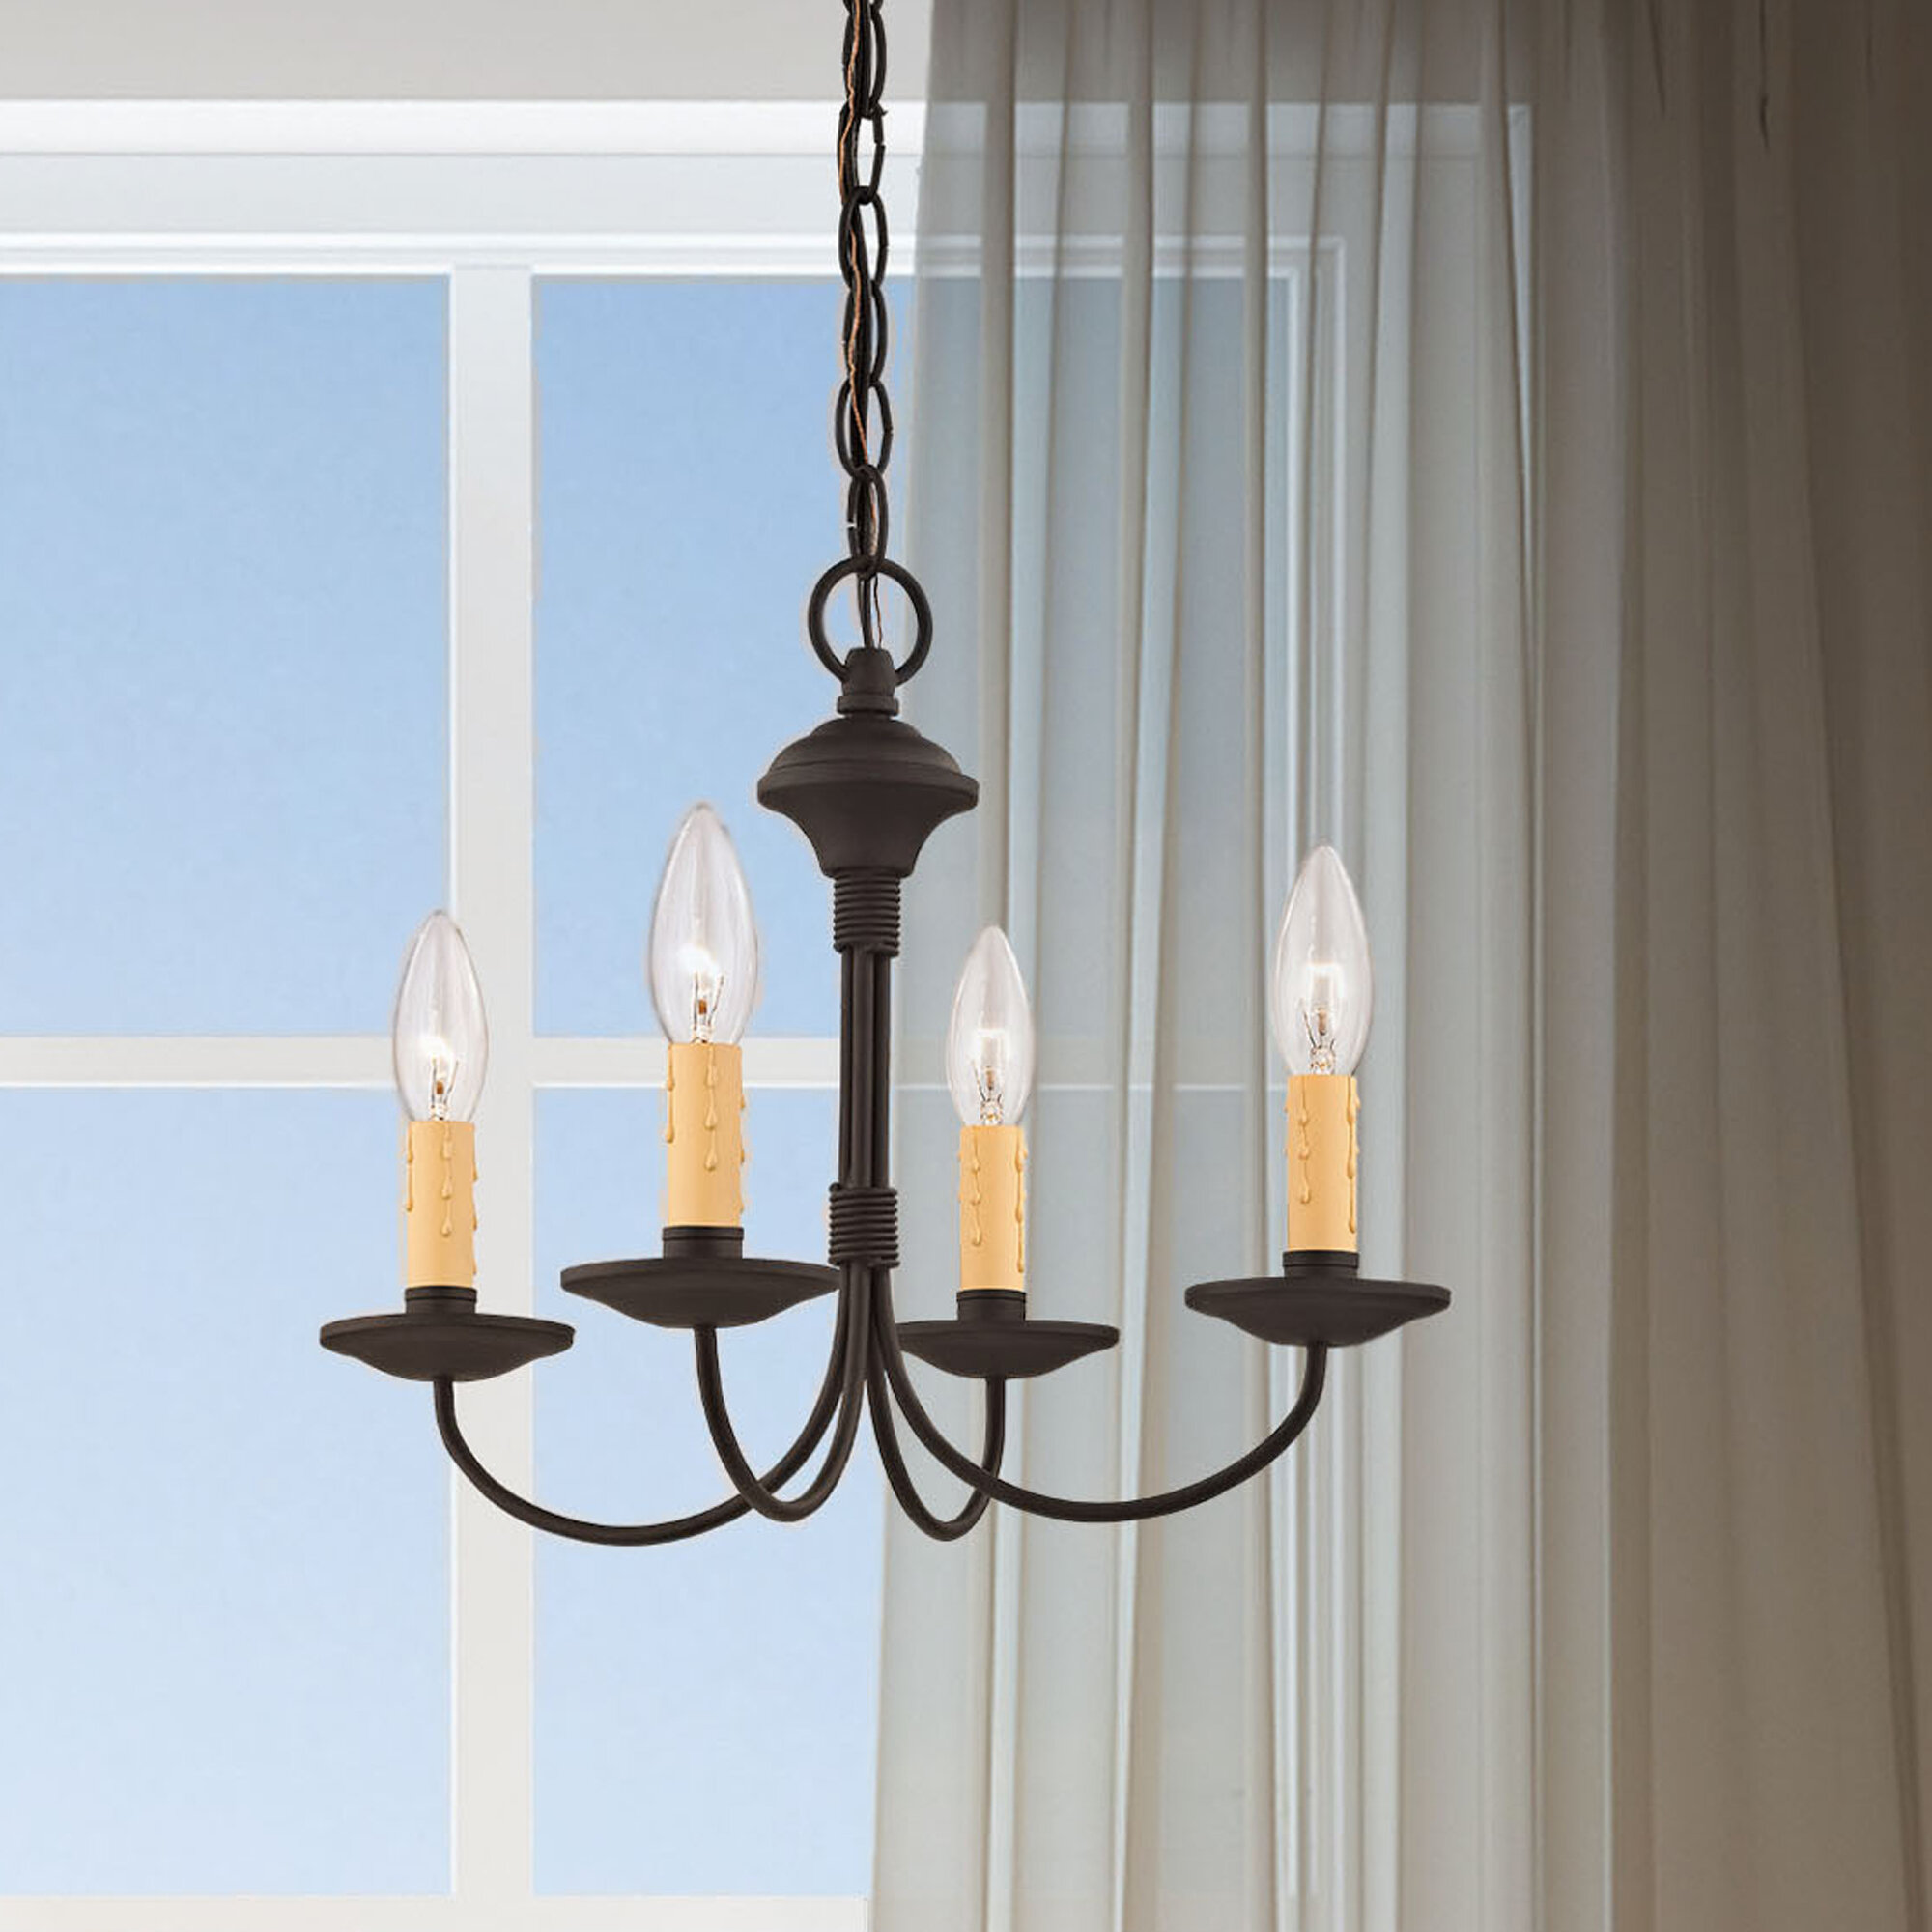 Darby Home Co Eberhart 4 Light Candle Style Classic Traditional Chandelier Wayfair